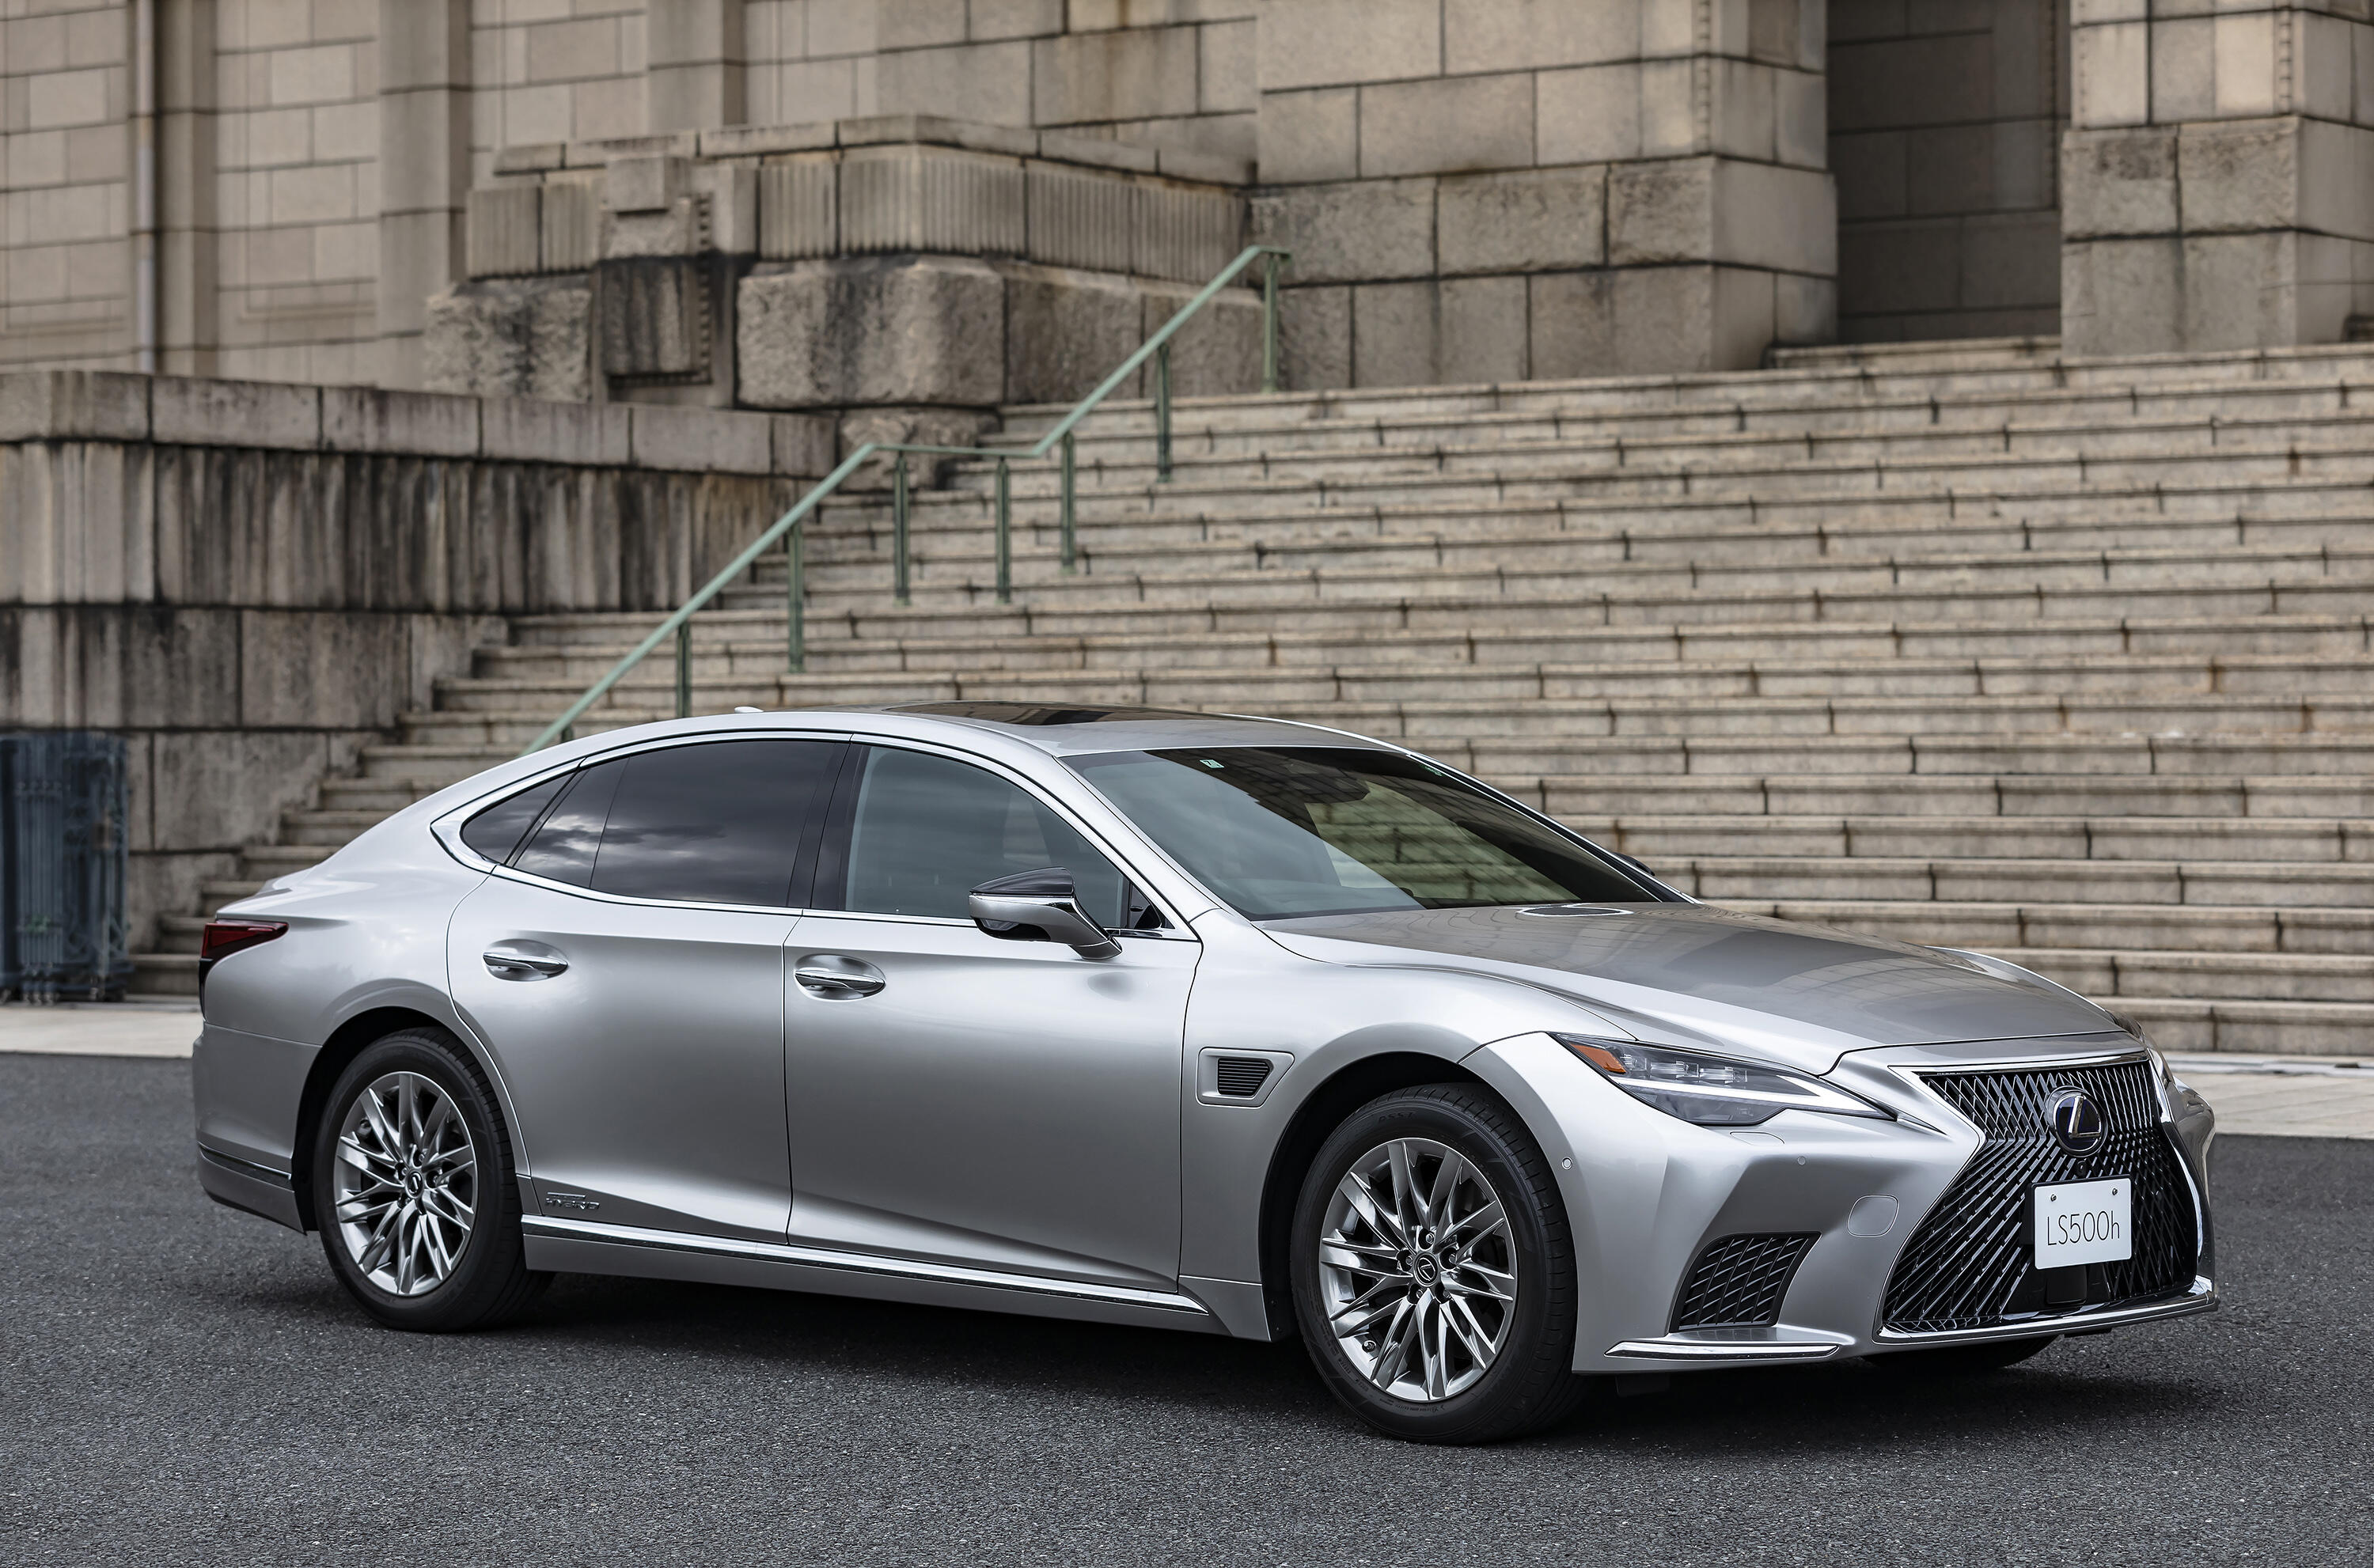 2022 Lexus LS 500h with Teammate system